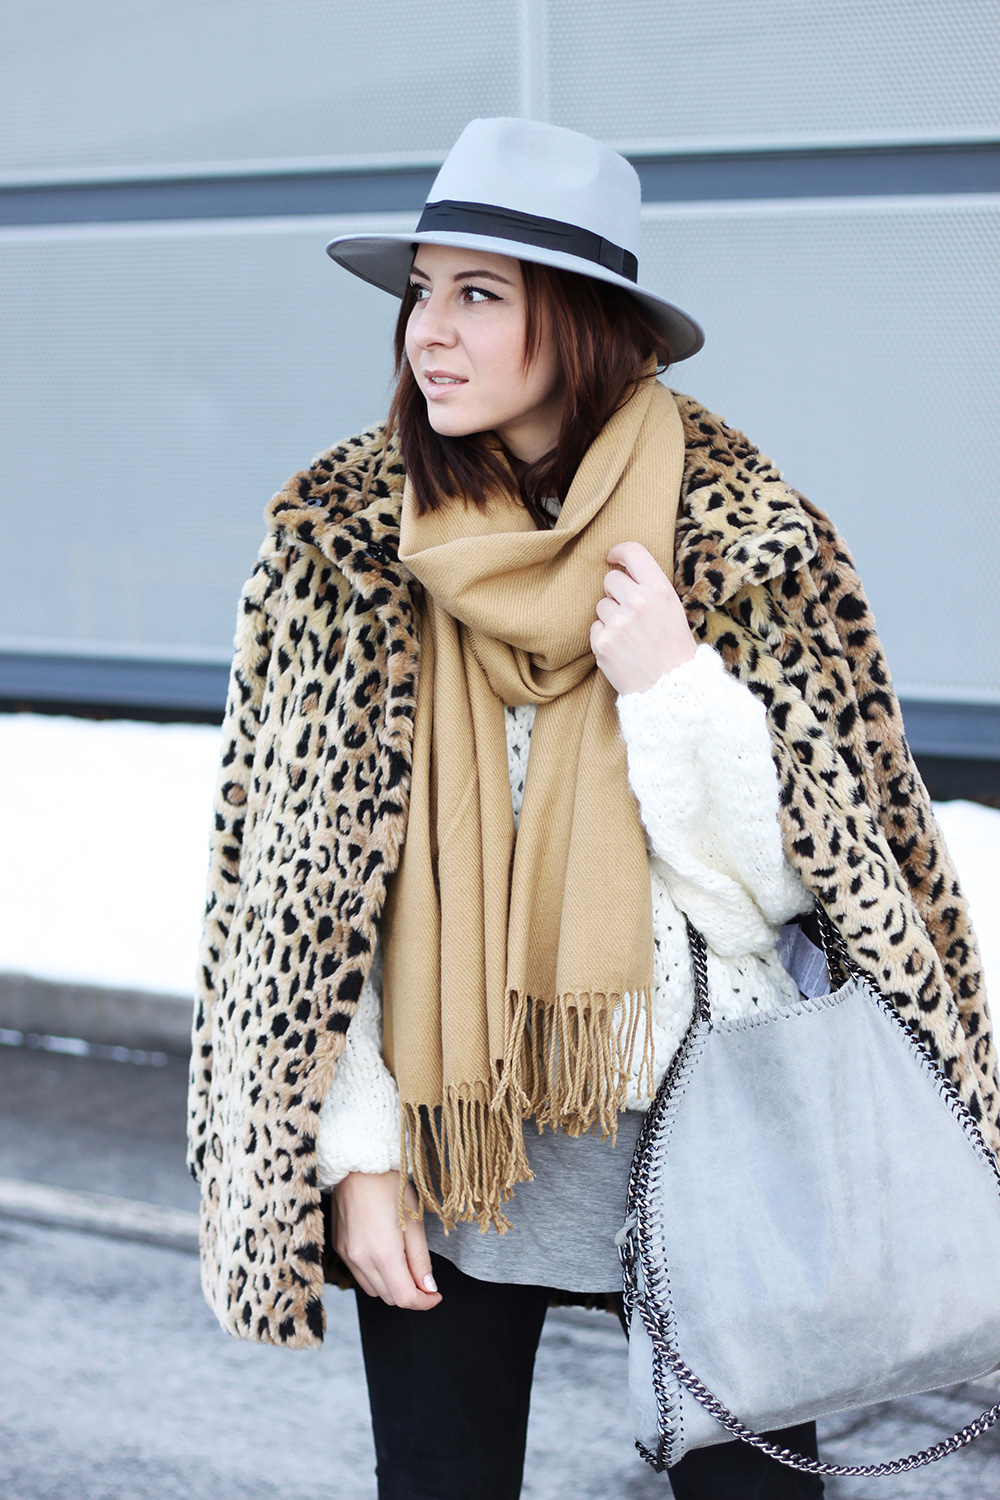 who is mocca, blogger tirol, mode, fashion, beauty, food, rezepte, lifestyle, leopard mantel kombinieren, isabel marant boots fransen, stella mccartney falabella lookalike, fedora hut grau, boohoo, strickpullover oversize, ootd, outfitinspiration, skinny shaping jeans, graues basic shirt